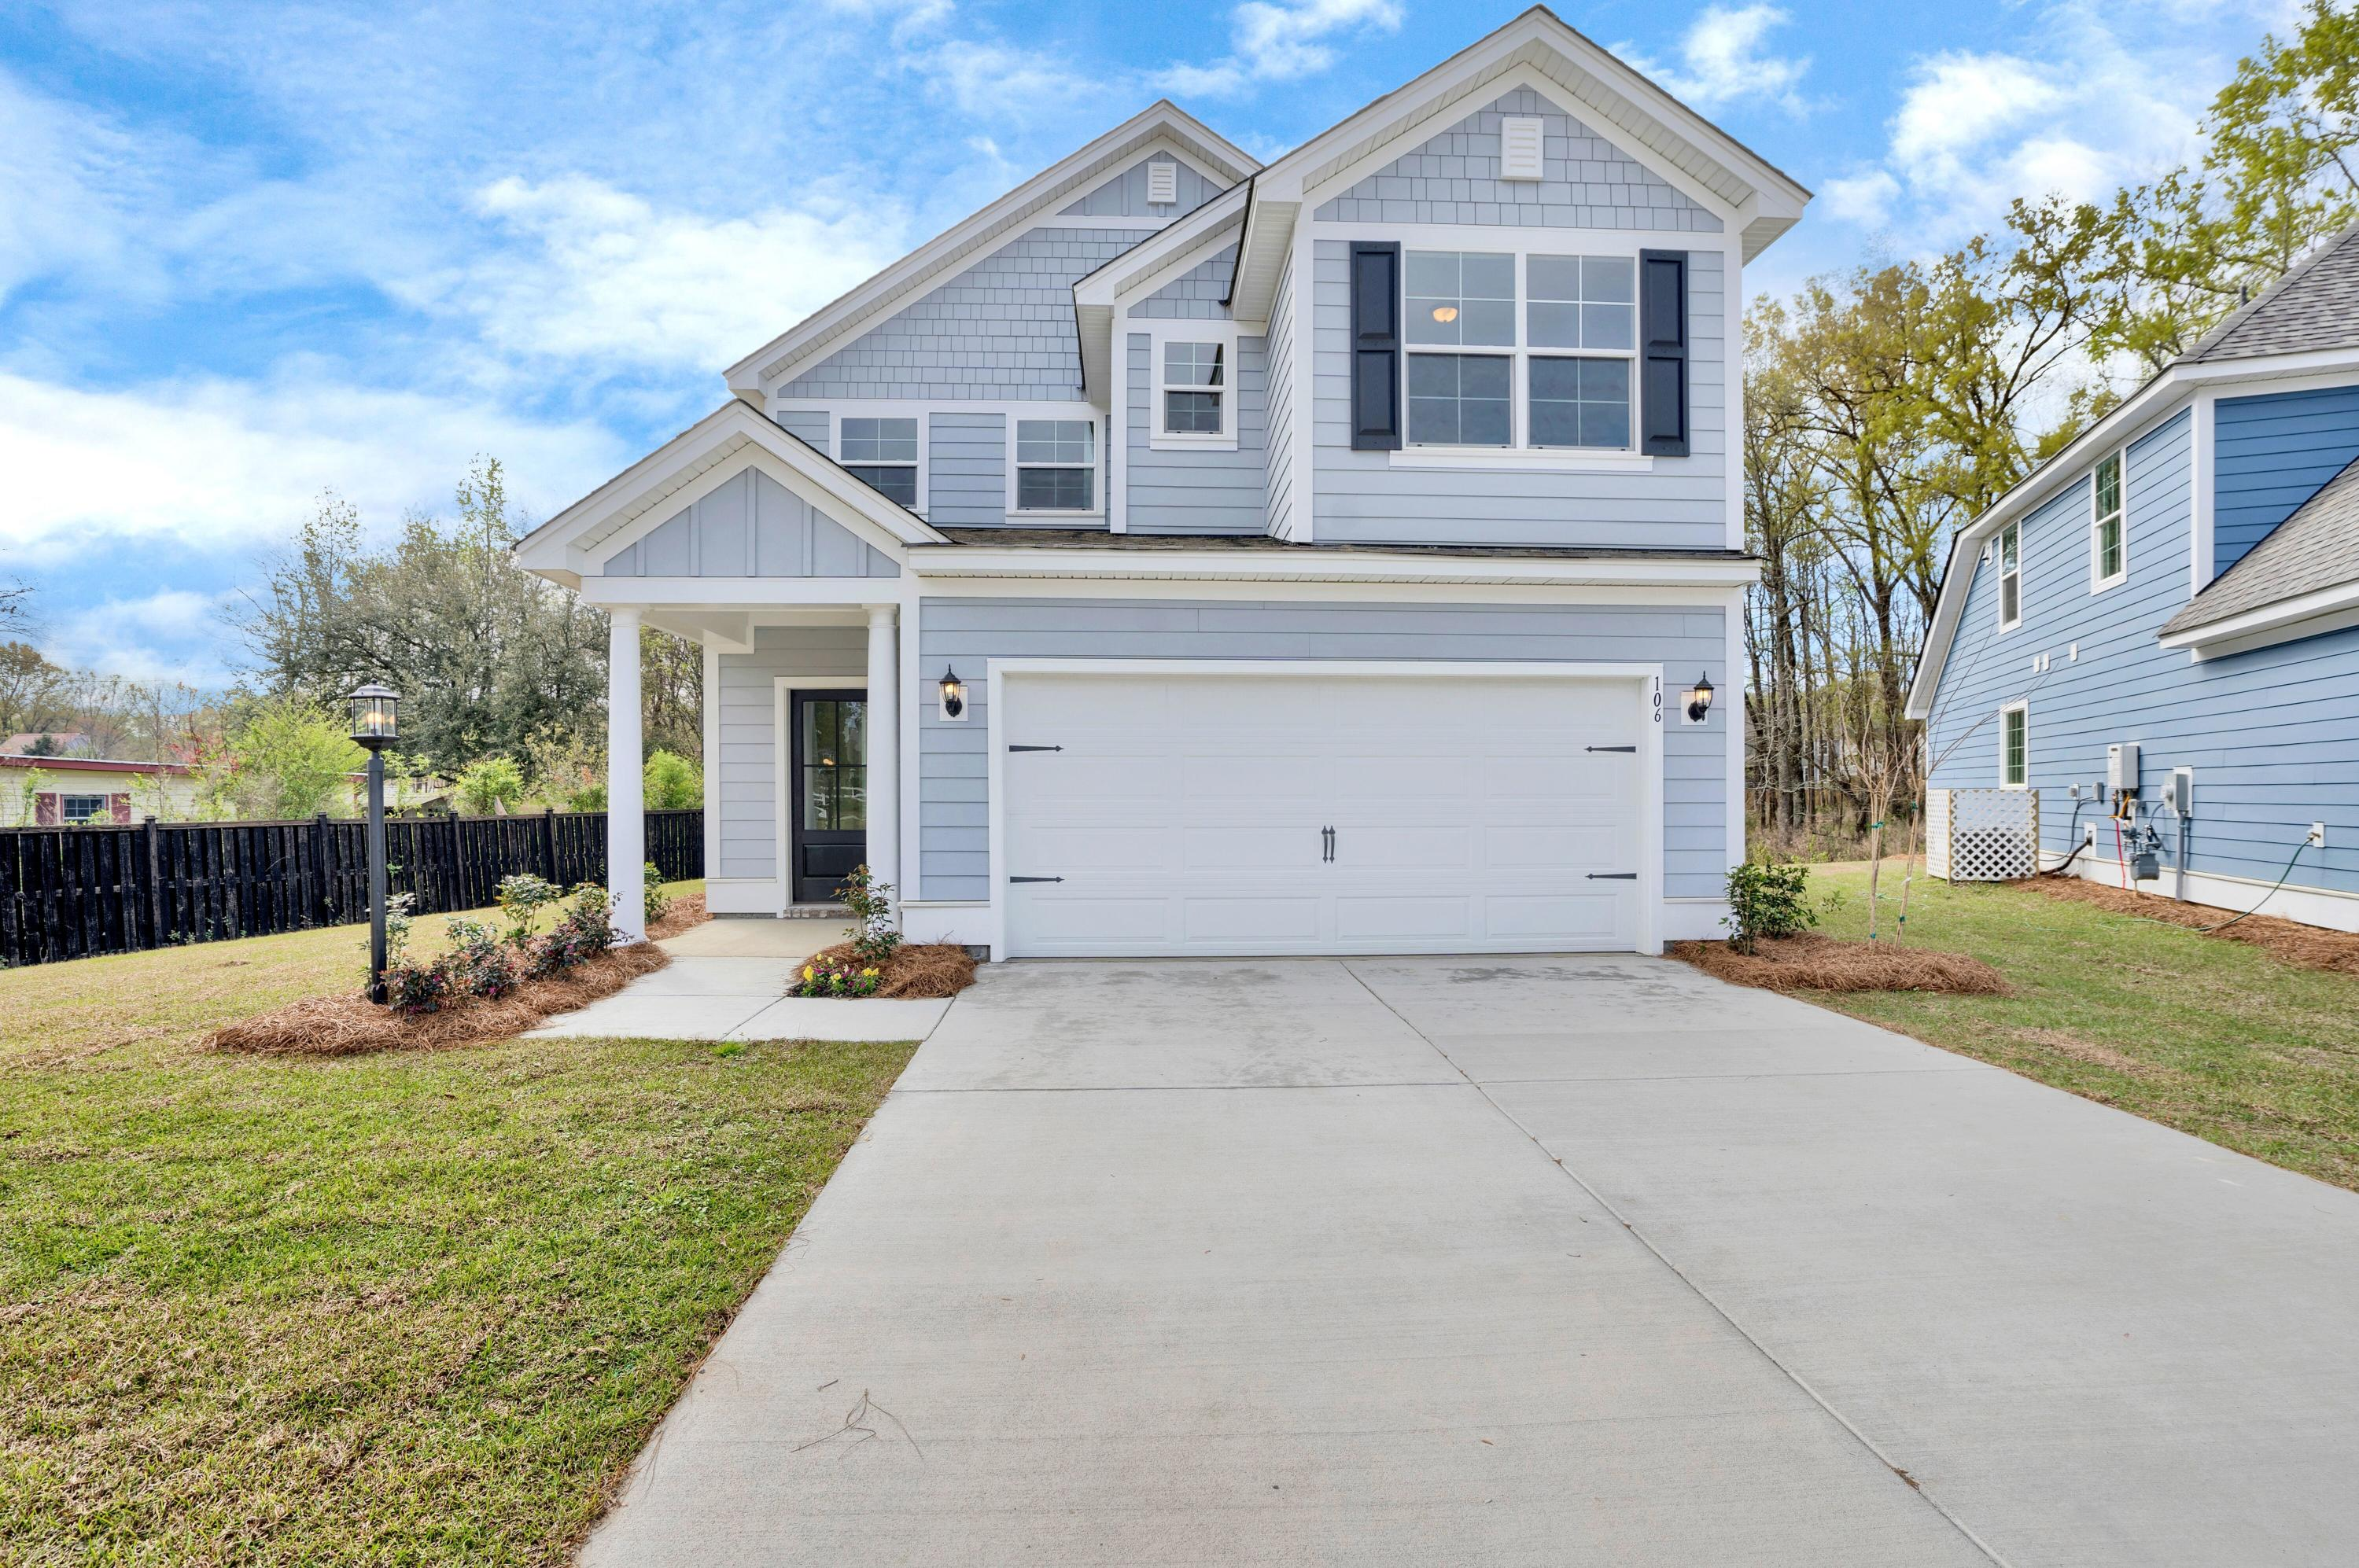 260 Mcclellan Way Summerville, SC 29483